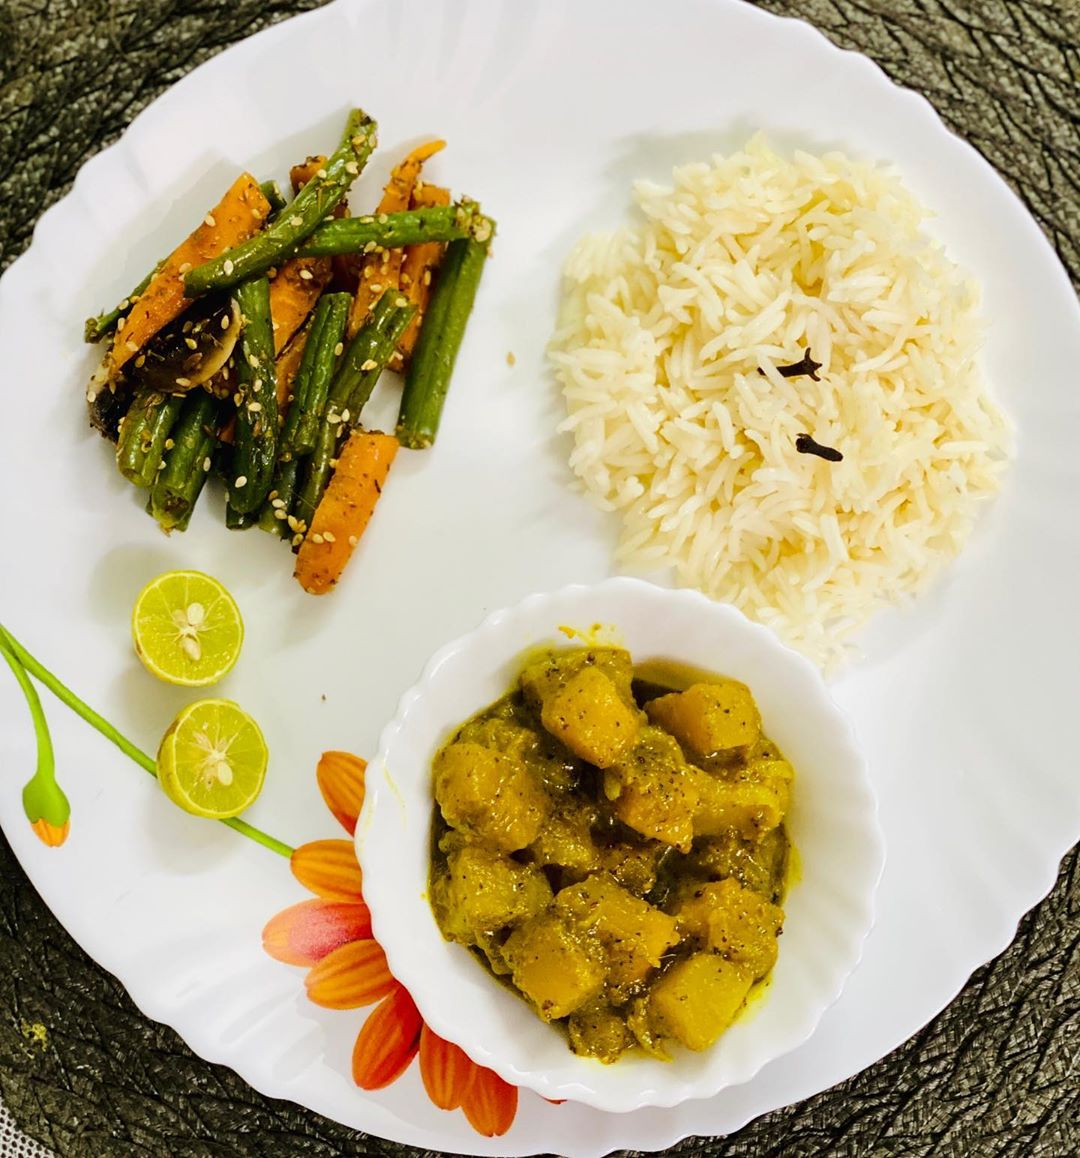 #kpmeals  Dinner for today  Pumpkin curry Parboiled rice  Stir fry beans and carrot  Thank you @rupsinthekitchen for the recipe  Especially the spices u suggested to grind ... the taste and aroma of the curry was pleasant.... A magical combo platter of vitamins A and C, iron and fiber makes it a healthy dinner option.  U can make soup , sabji , kebab of it #pumpkincurry